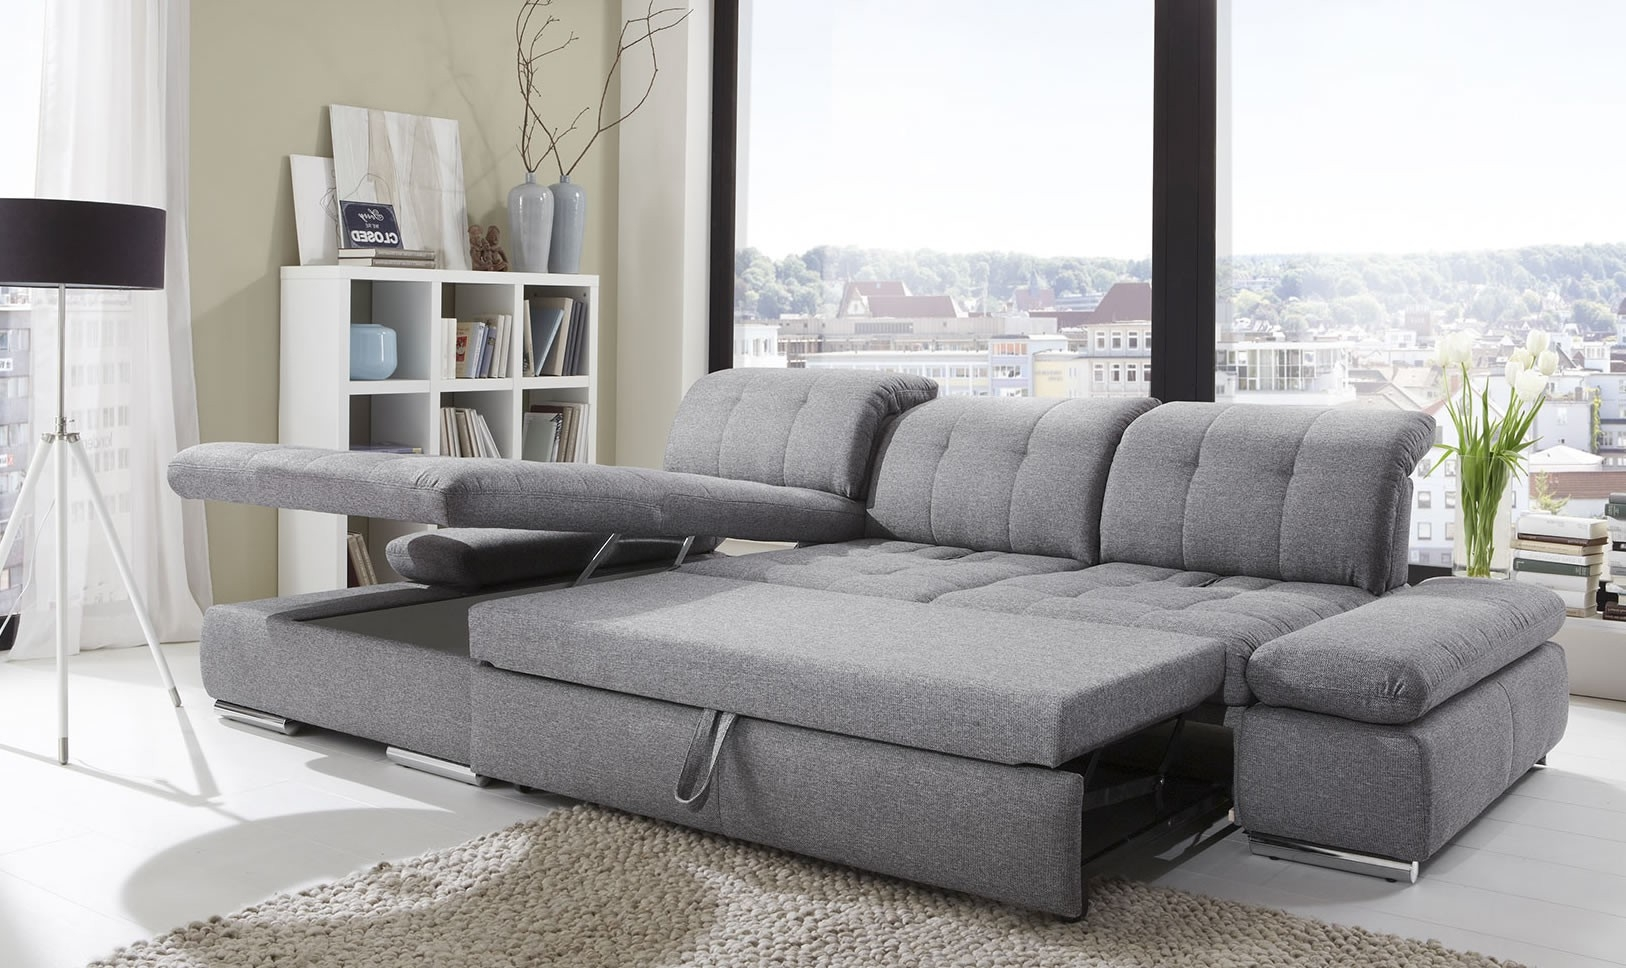 Alpine Sectional Sleeper Sofa Left Arm Chaise Facing Durable Pertaining To Durable Sectional Sofa (View 10 of 15)